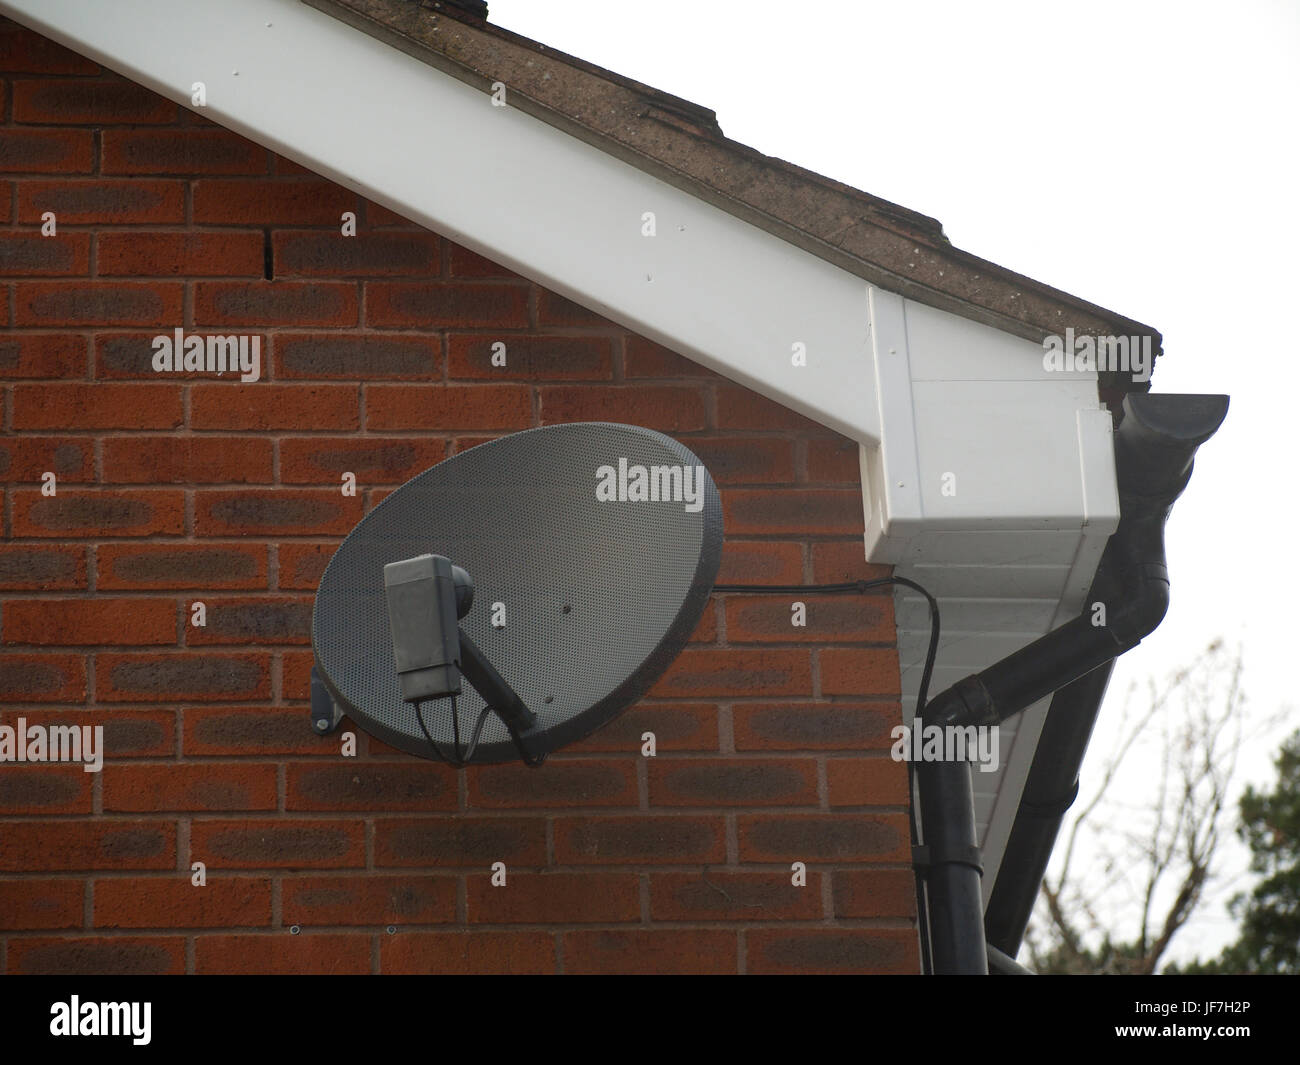 Sky dish mounted on traditional red brick British house - Stock Image